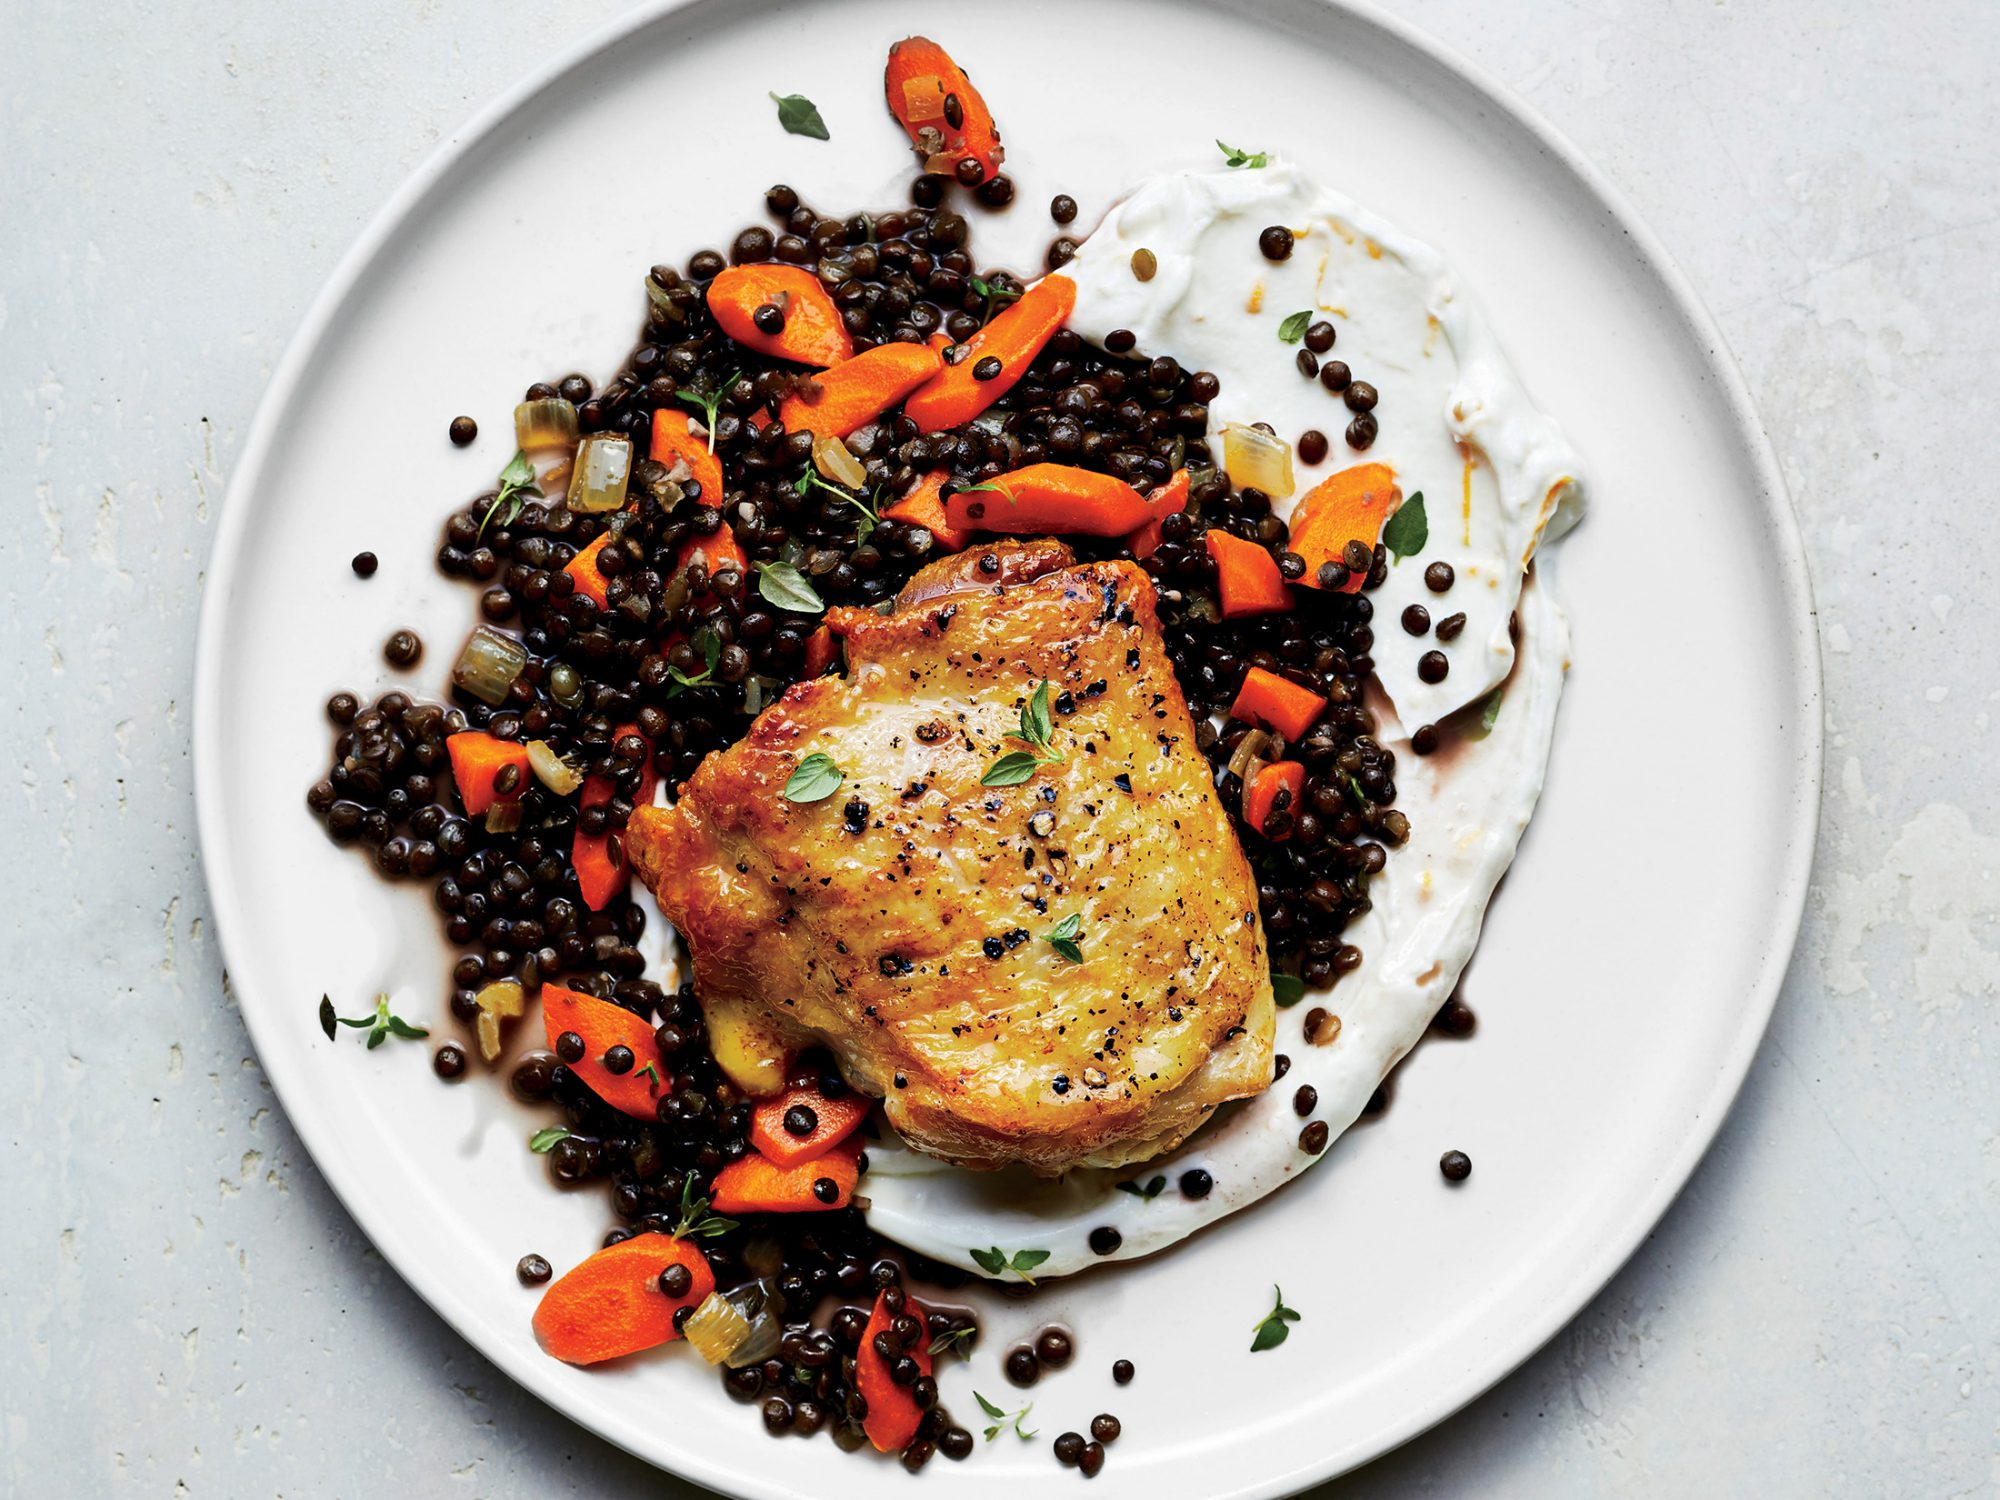 Roast Chicken with Lentils and Yogurt